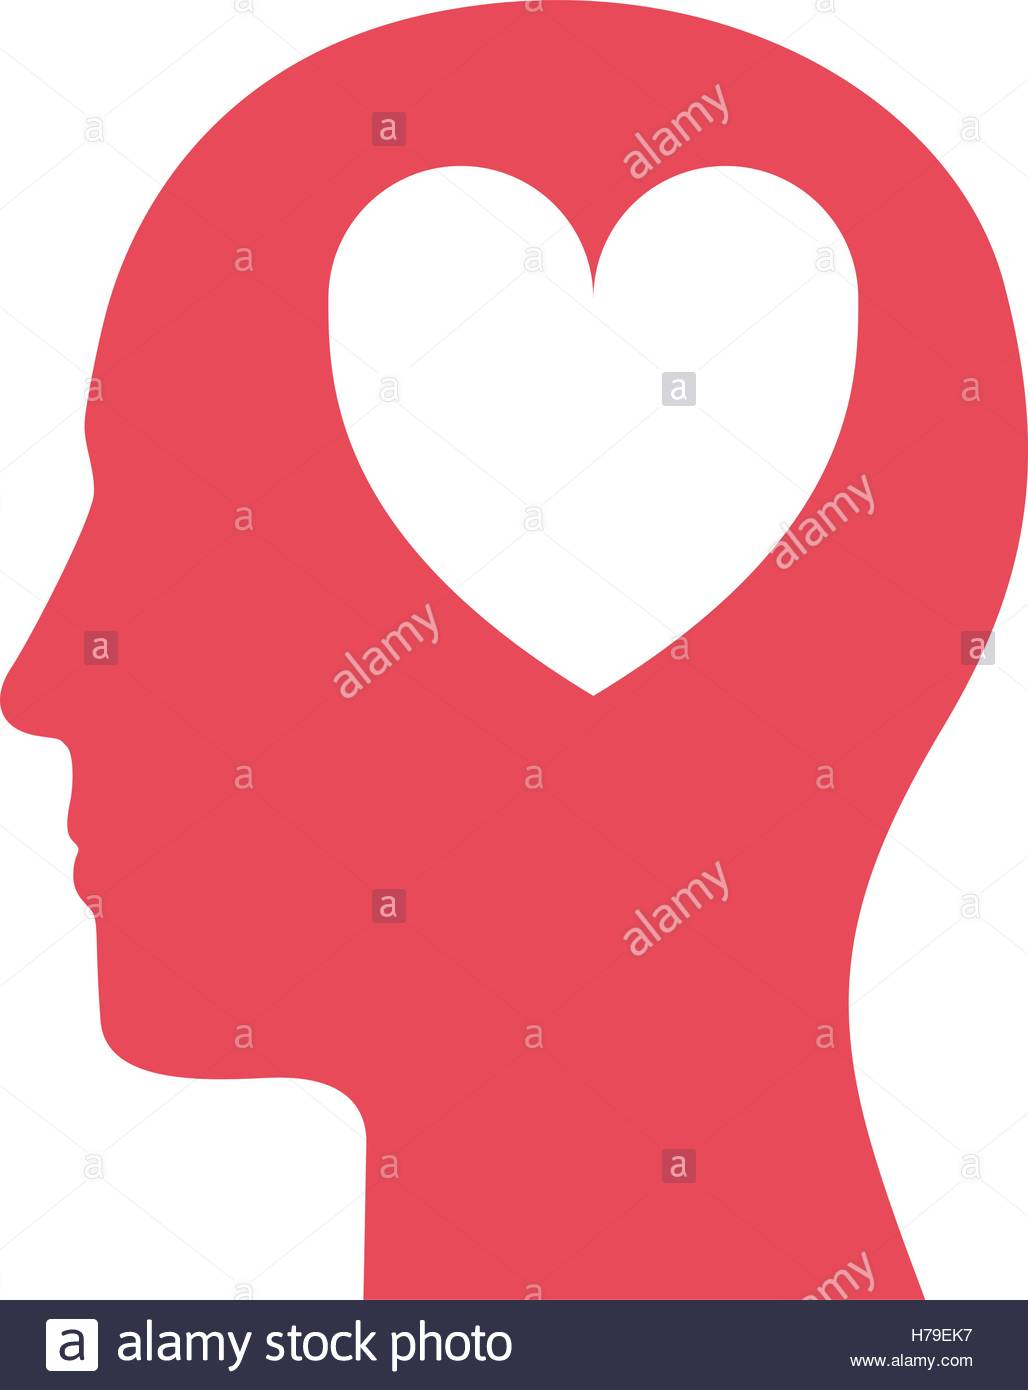 1028x1390 Silhouette Of Human Head Profile With Heart Shape Icon Inside Over